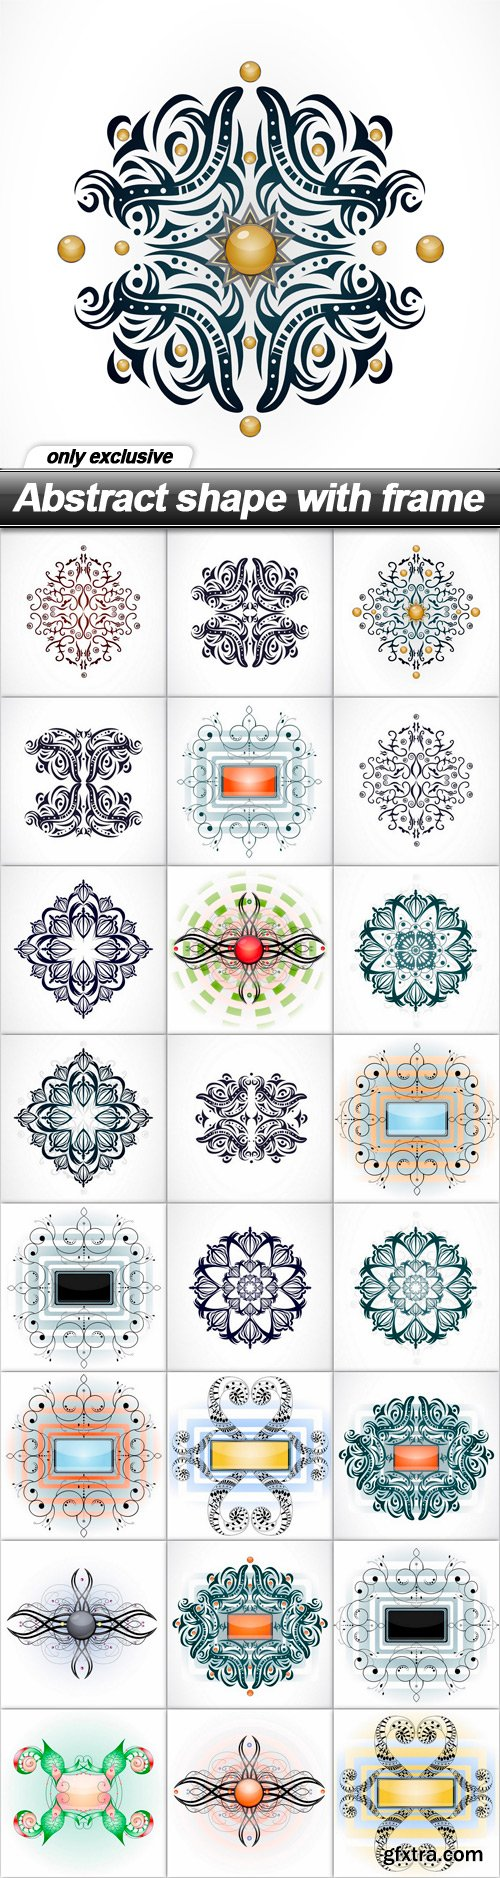 Abstract shape with frame - 25 EPS